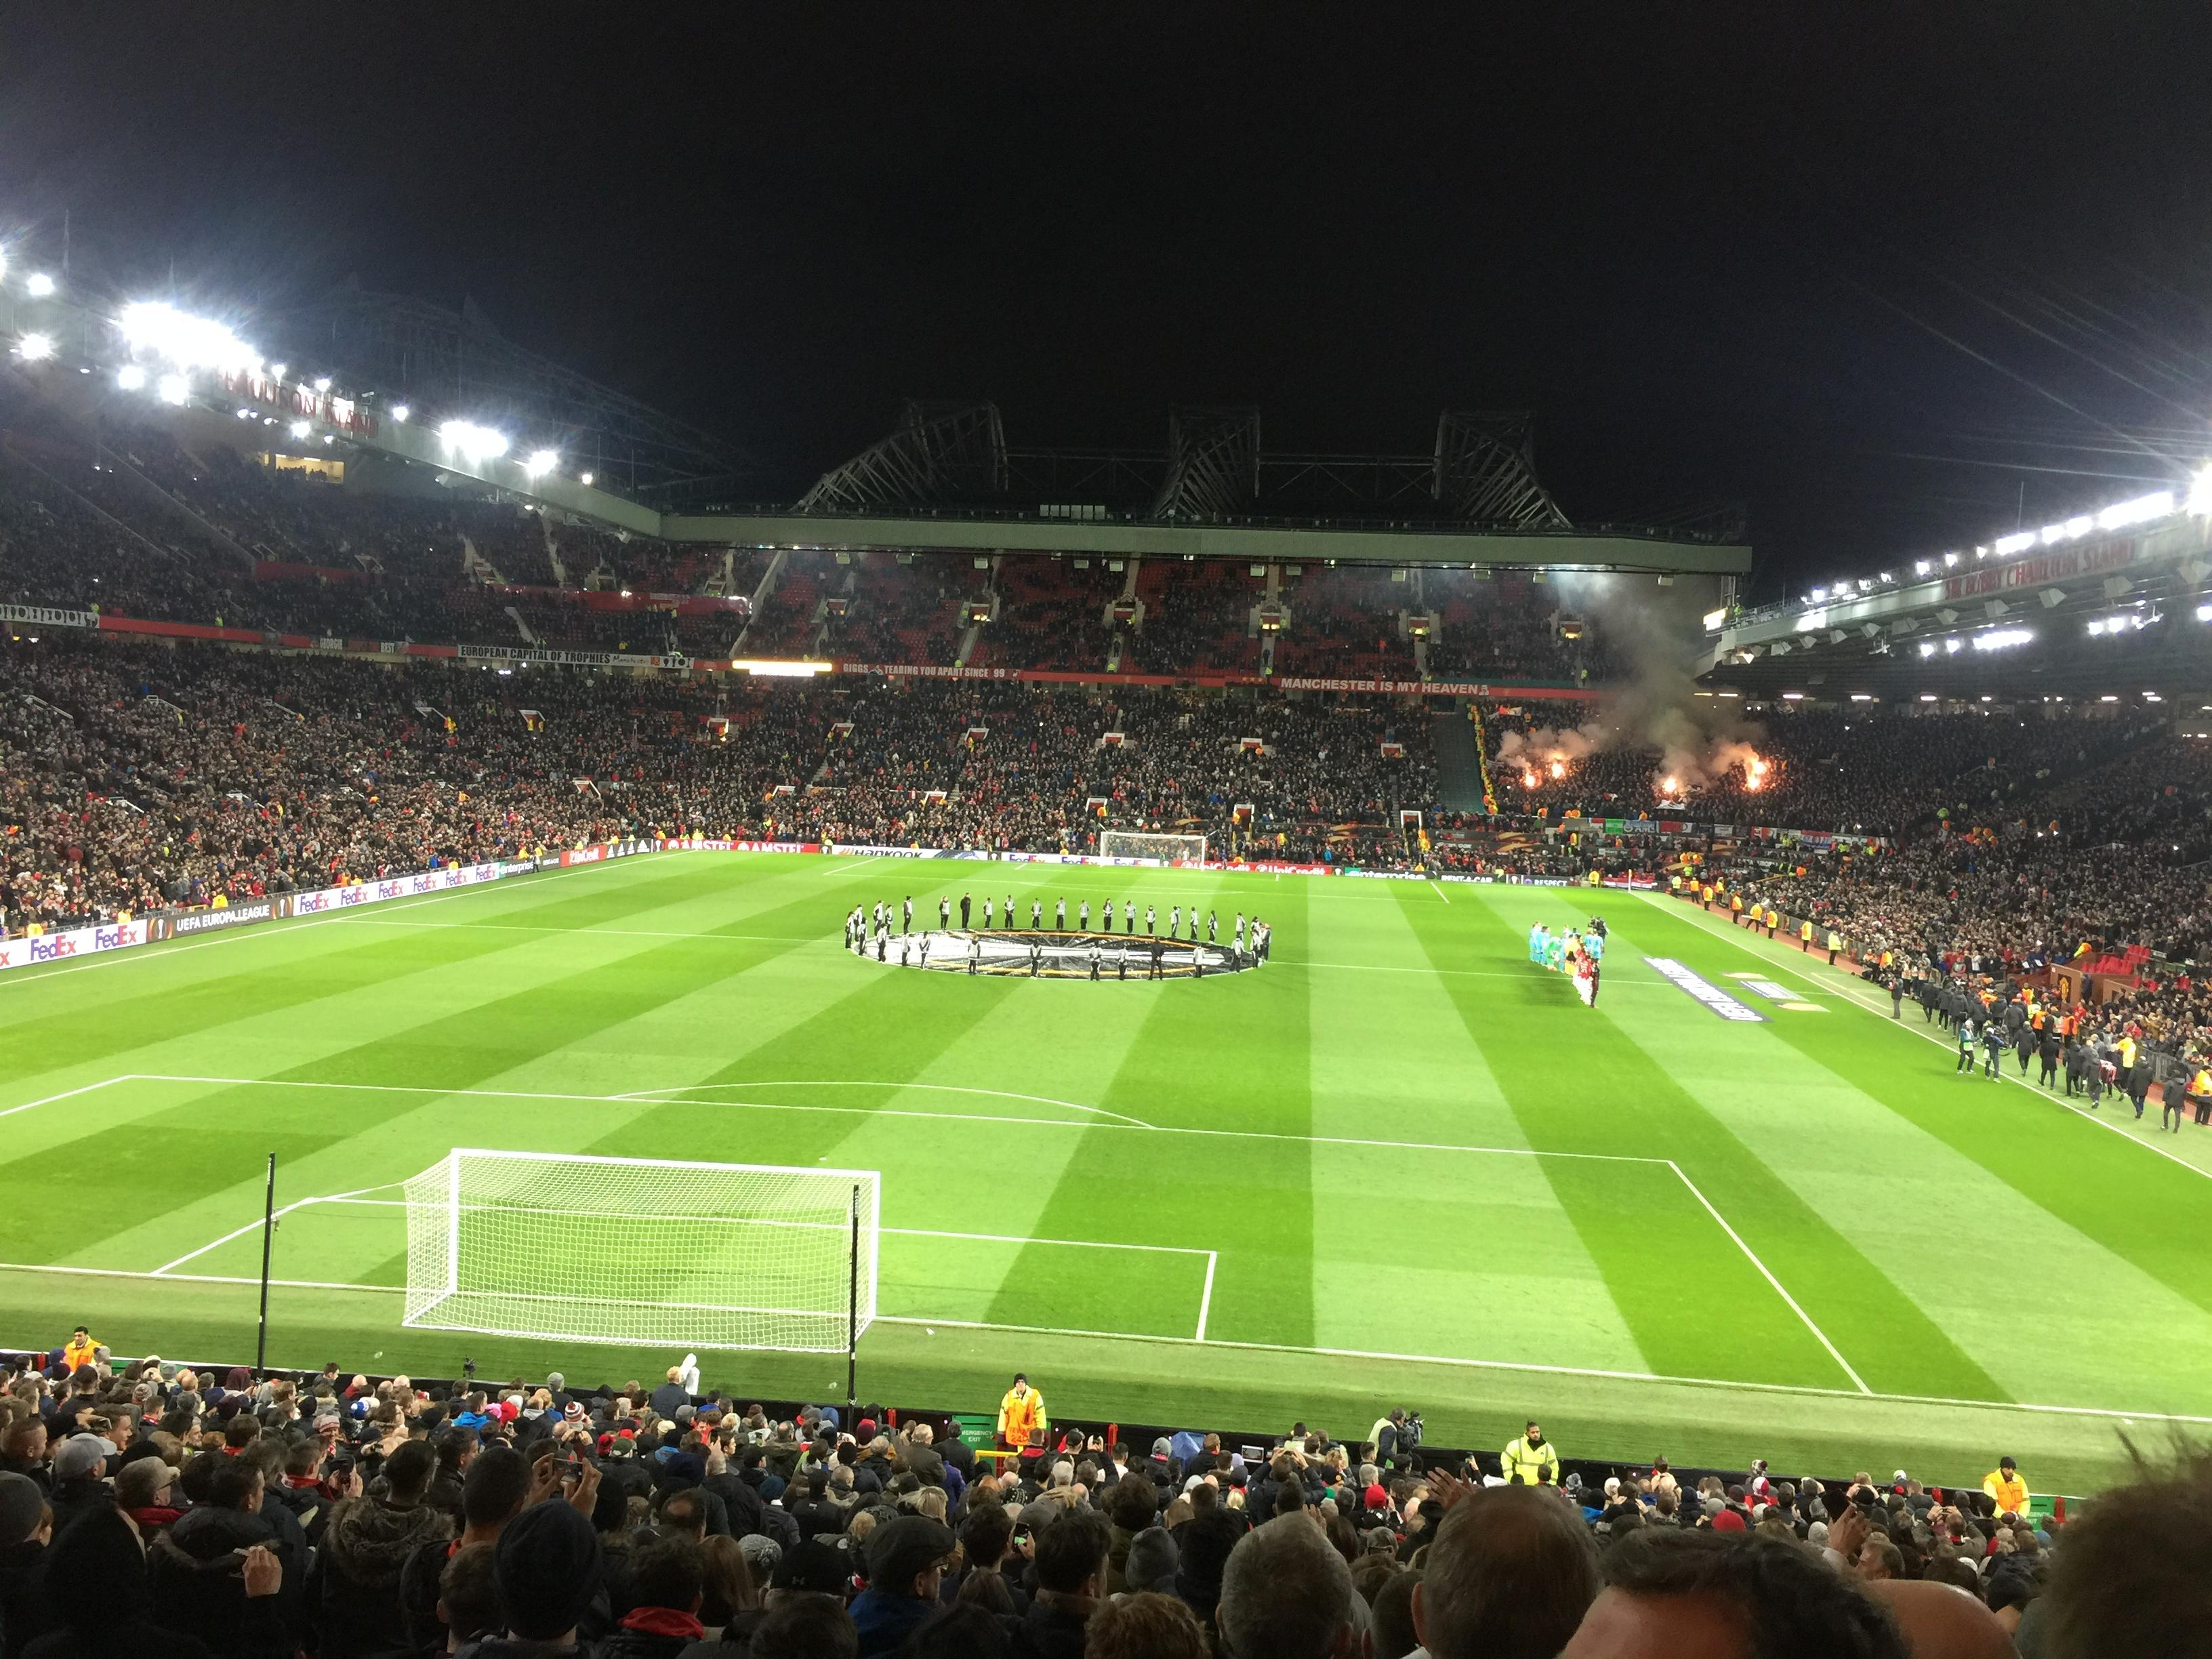 Old Trafford Section W206 Row 20 Seat 166